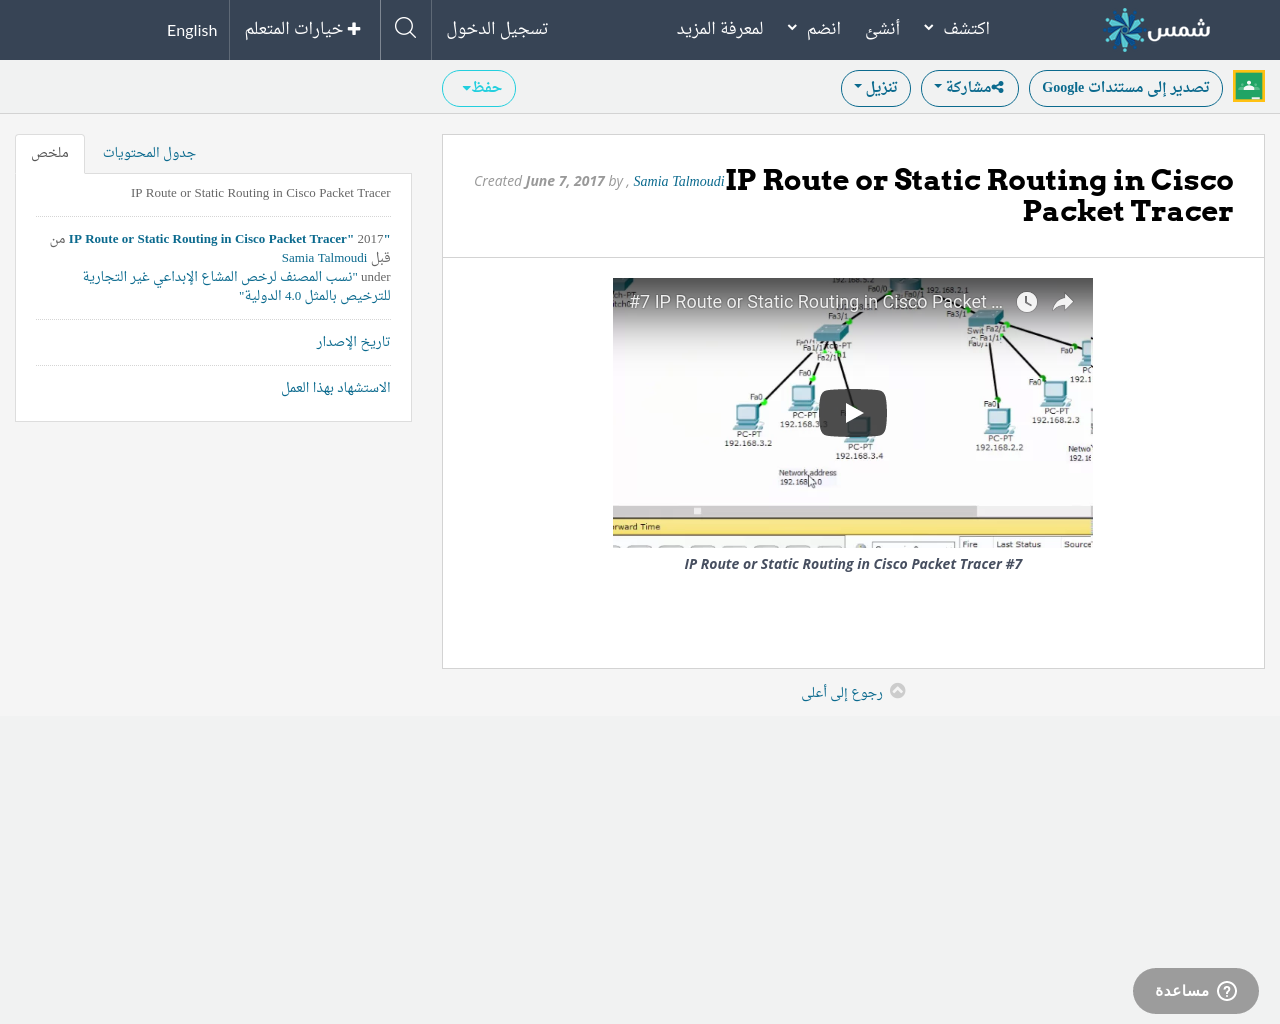 IP Route or Static Routing in Cisco Packet Tracer   SHMS - Saudi OER